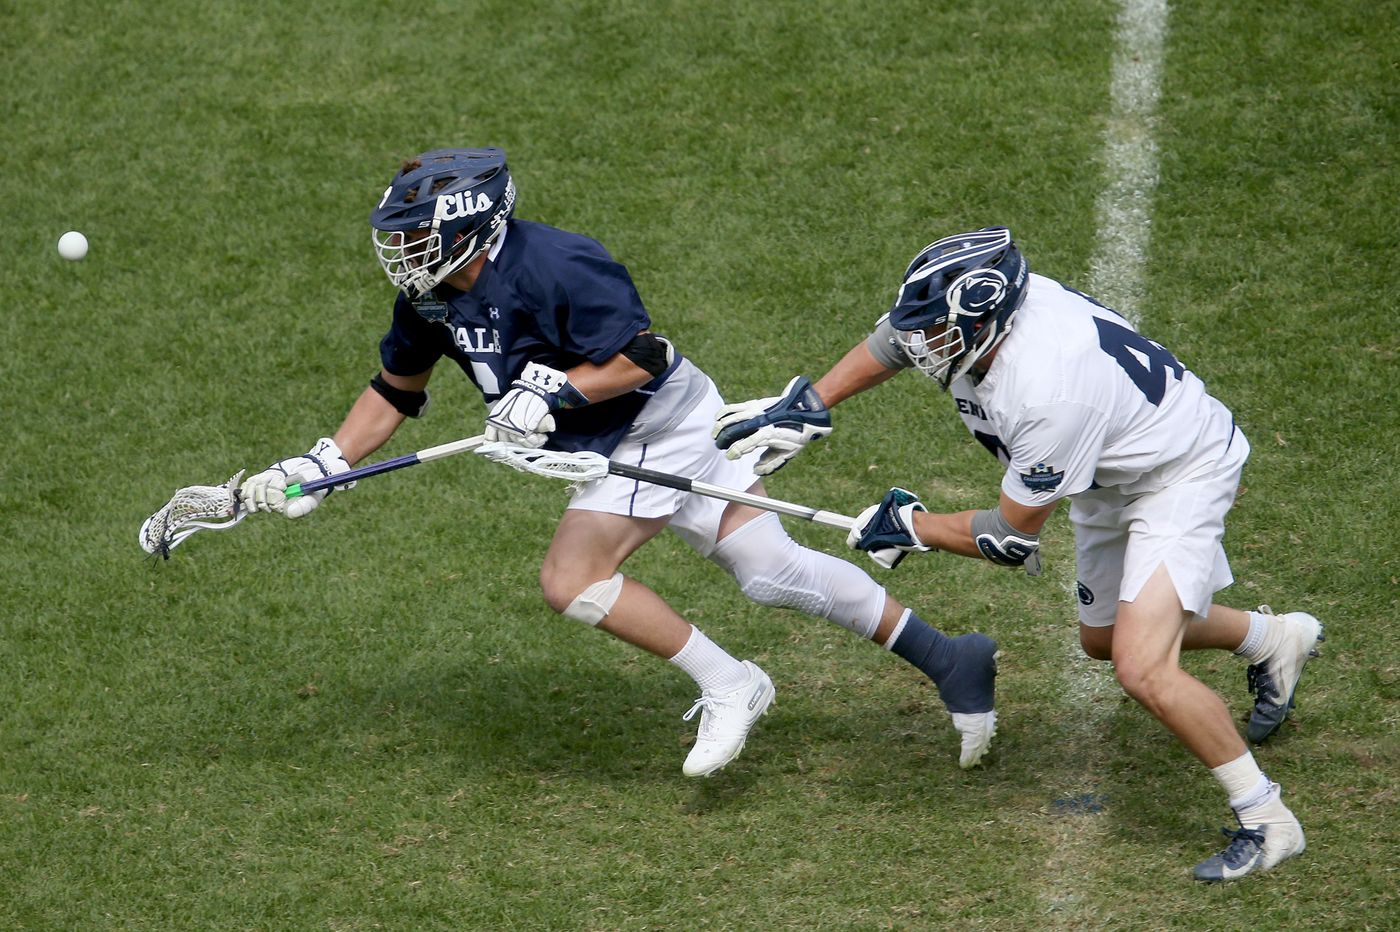 Penn State had few answers for Yale faceoff master T.D. Ierlan in NCAA Division I semifinals